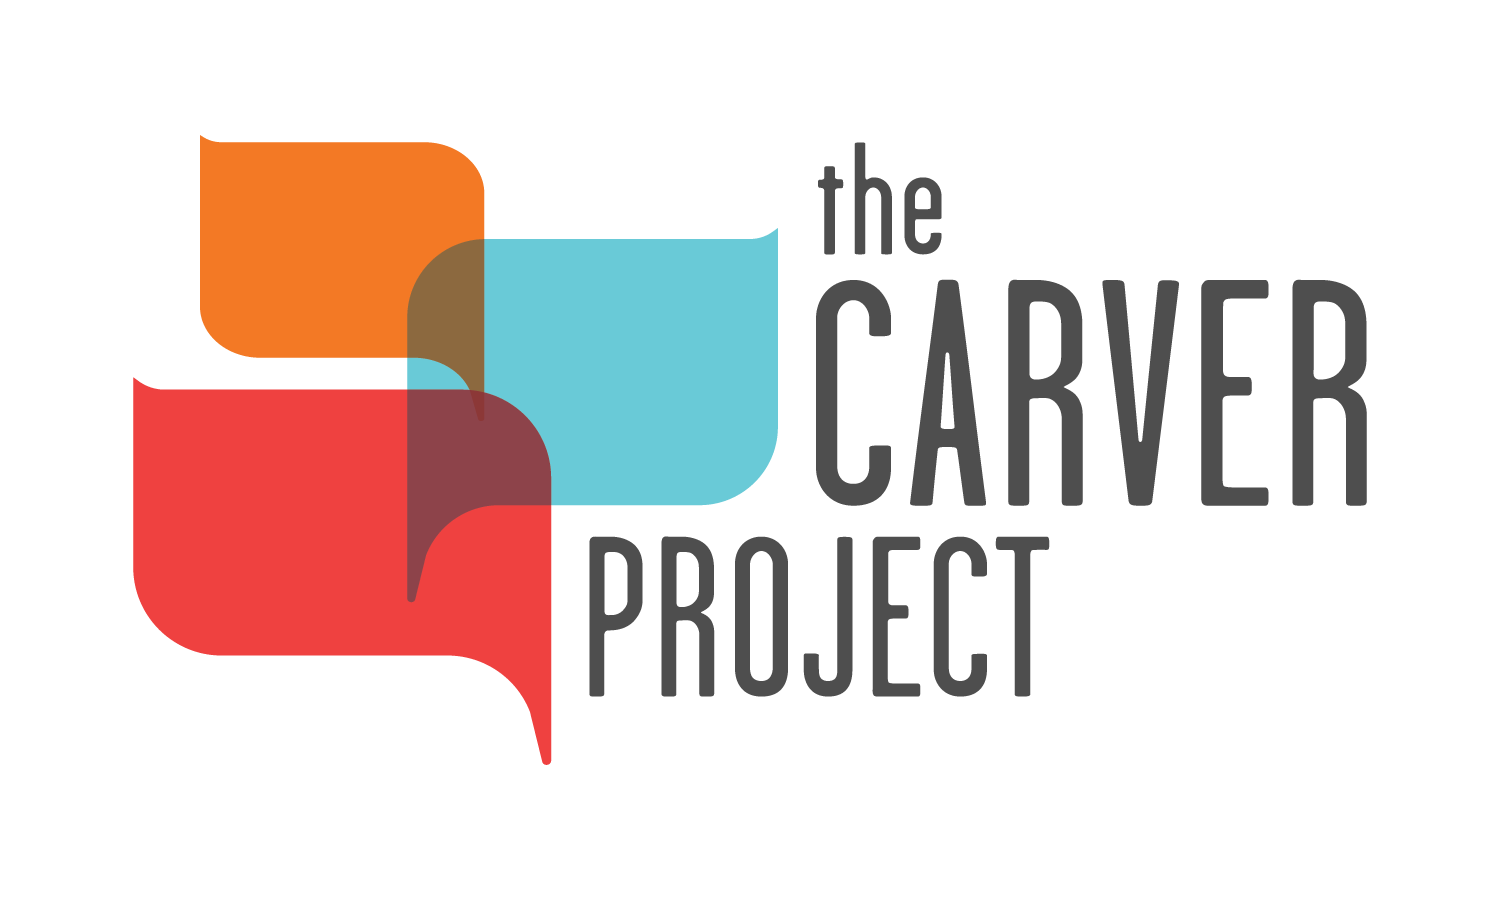 The Carver Project